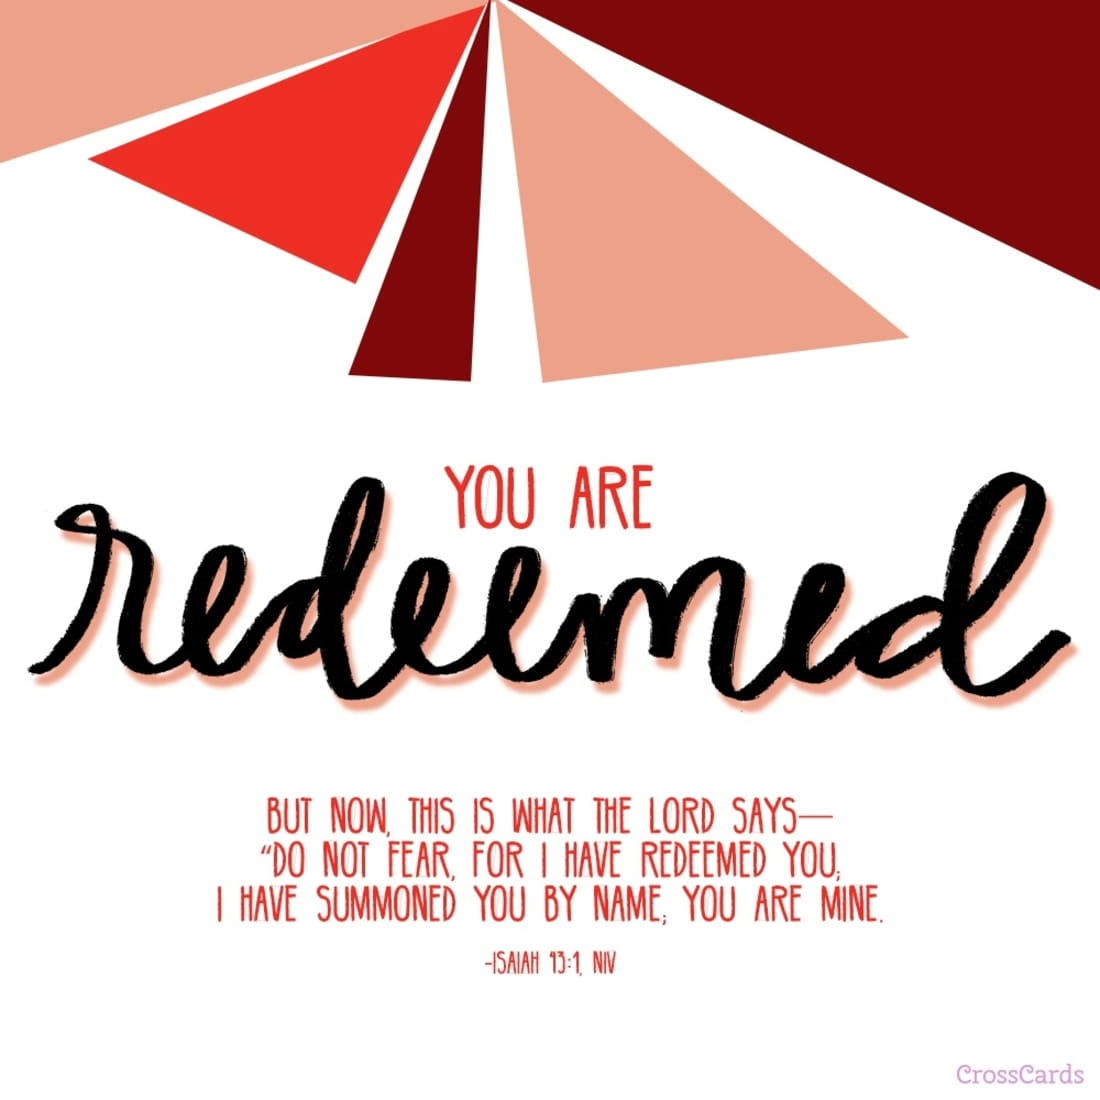 You Are Redeemed! ecard, online card